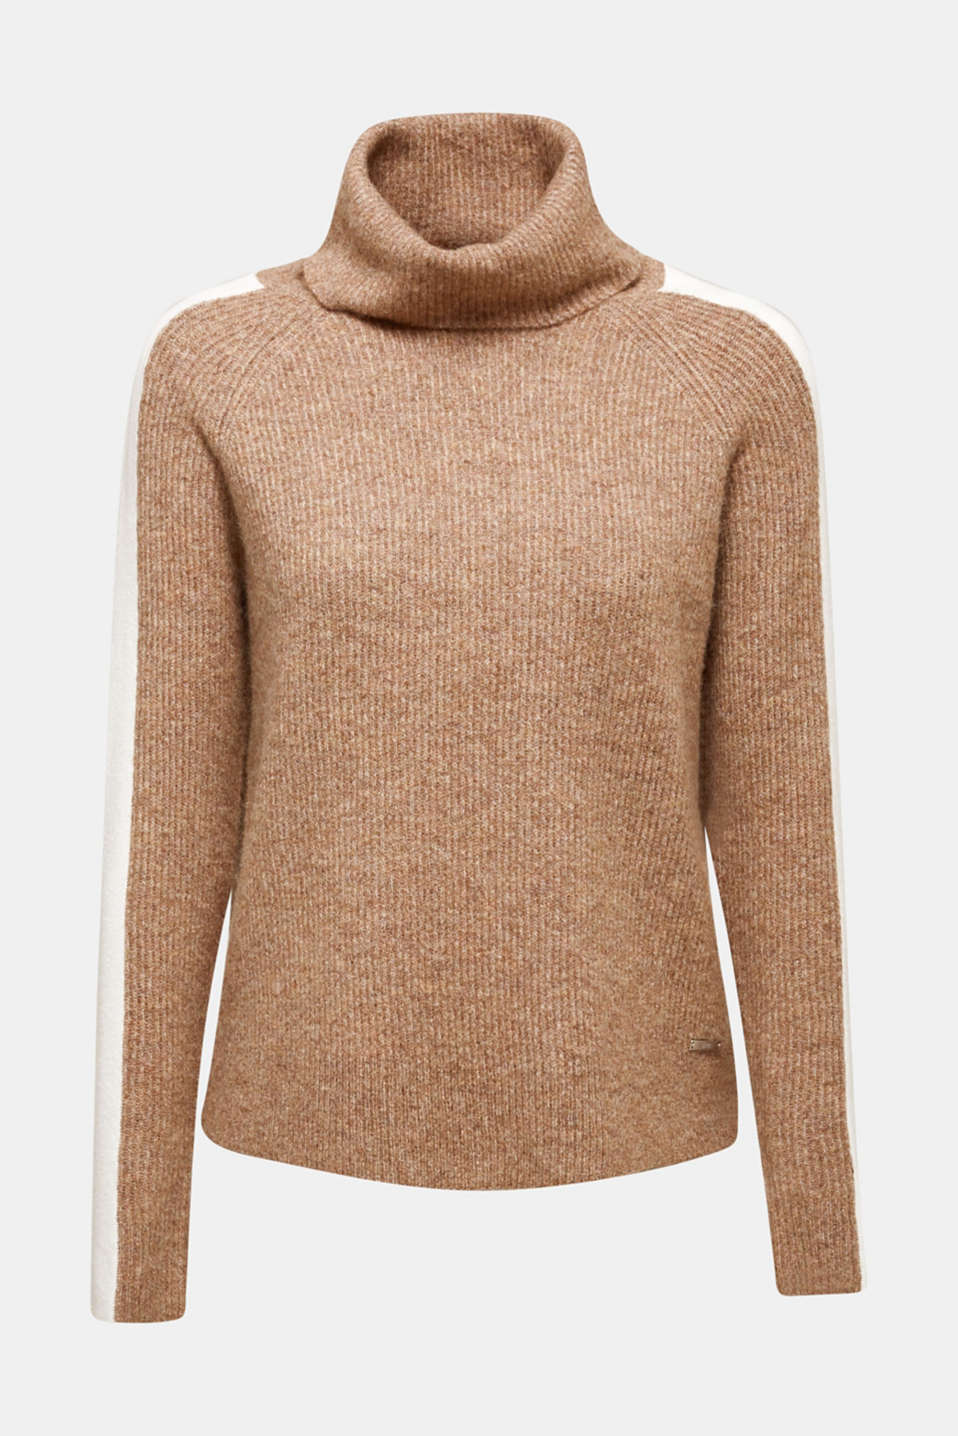 Polo neck jumper with racing stripes and wool, CAMEL 5, detail image number 6